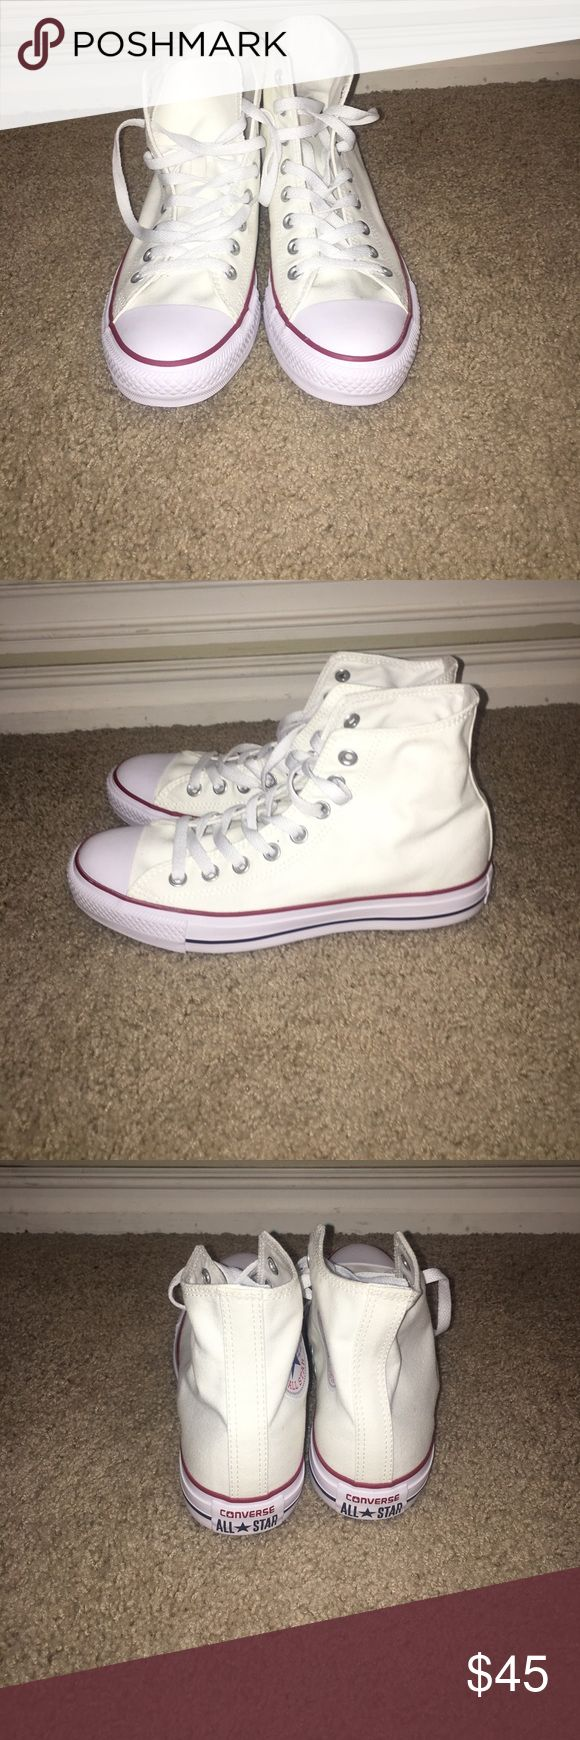 brand new white high top converse never been worn high top converse// super cute but not my size Converse Shoes Sneakers